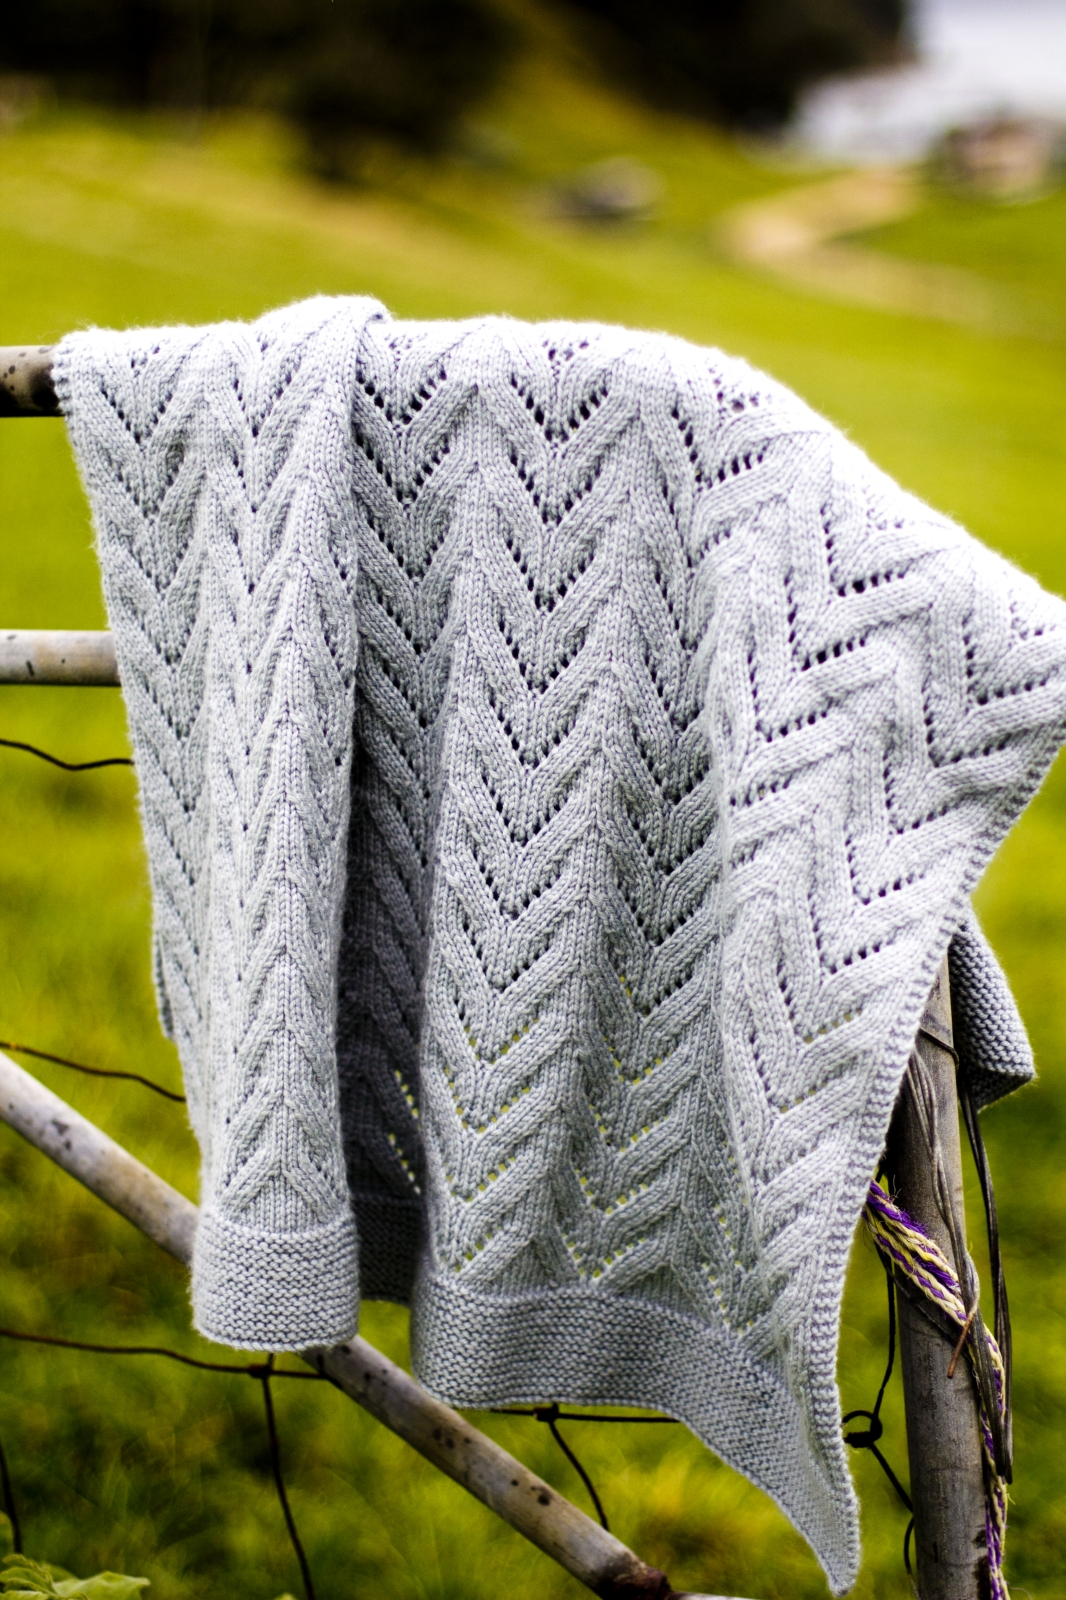 Knitted Blanket Patterns Nz : Twisty Lace Baby Blanket Pattern - Baby Cakes by Little Cupcakes - lisaFdesig...